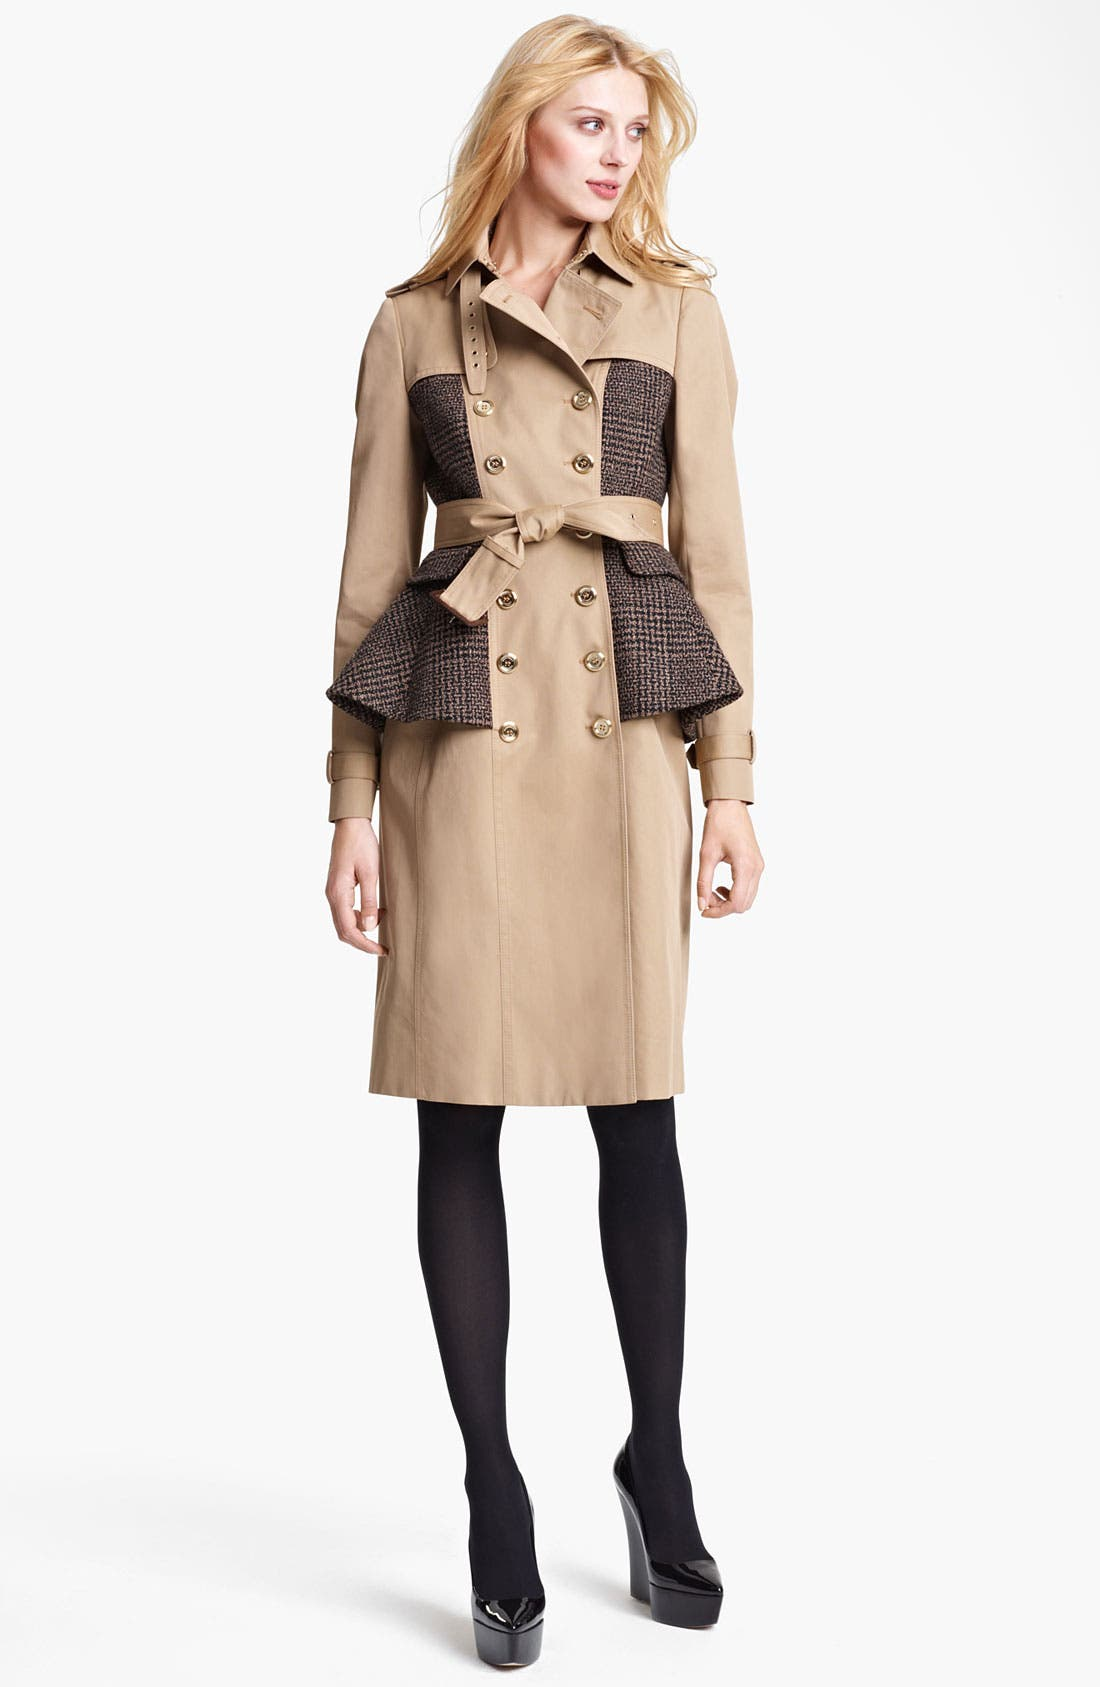 Alternate Image 1 Selected - Burberry Prorsum Belted Plaid Peplum Trench Coat